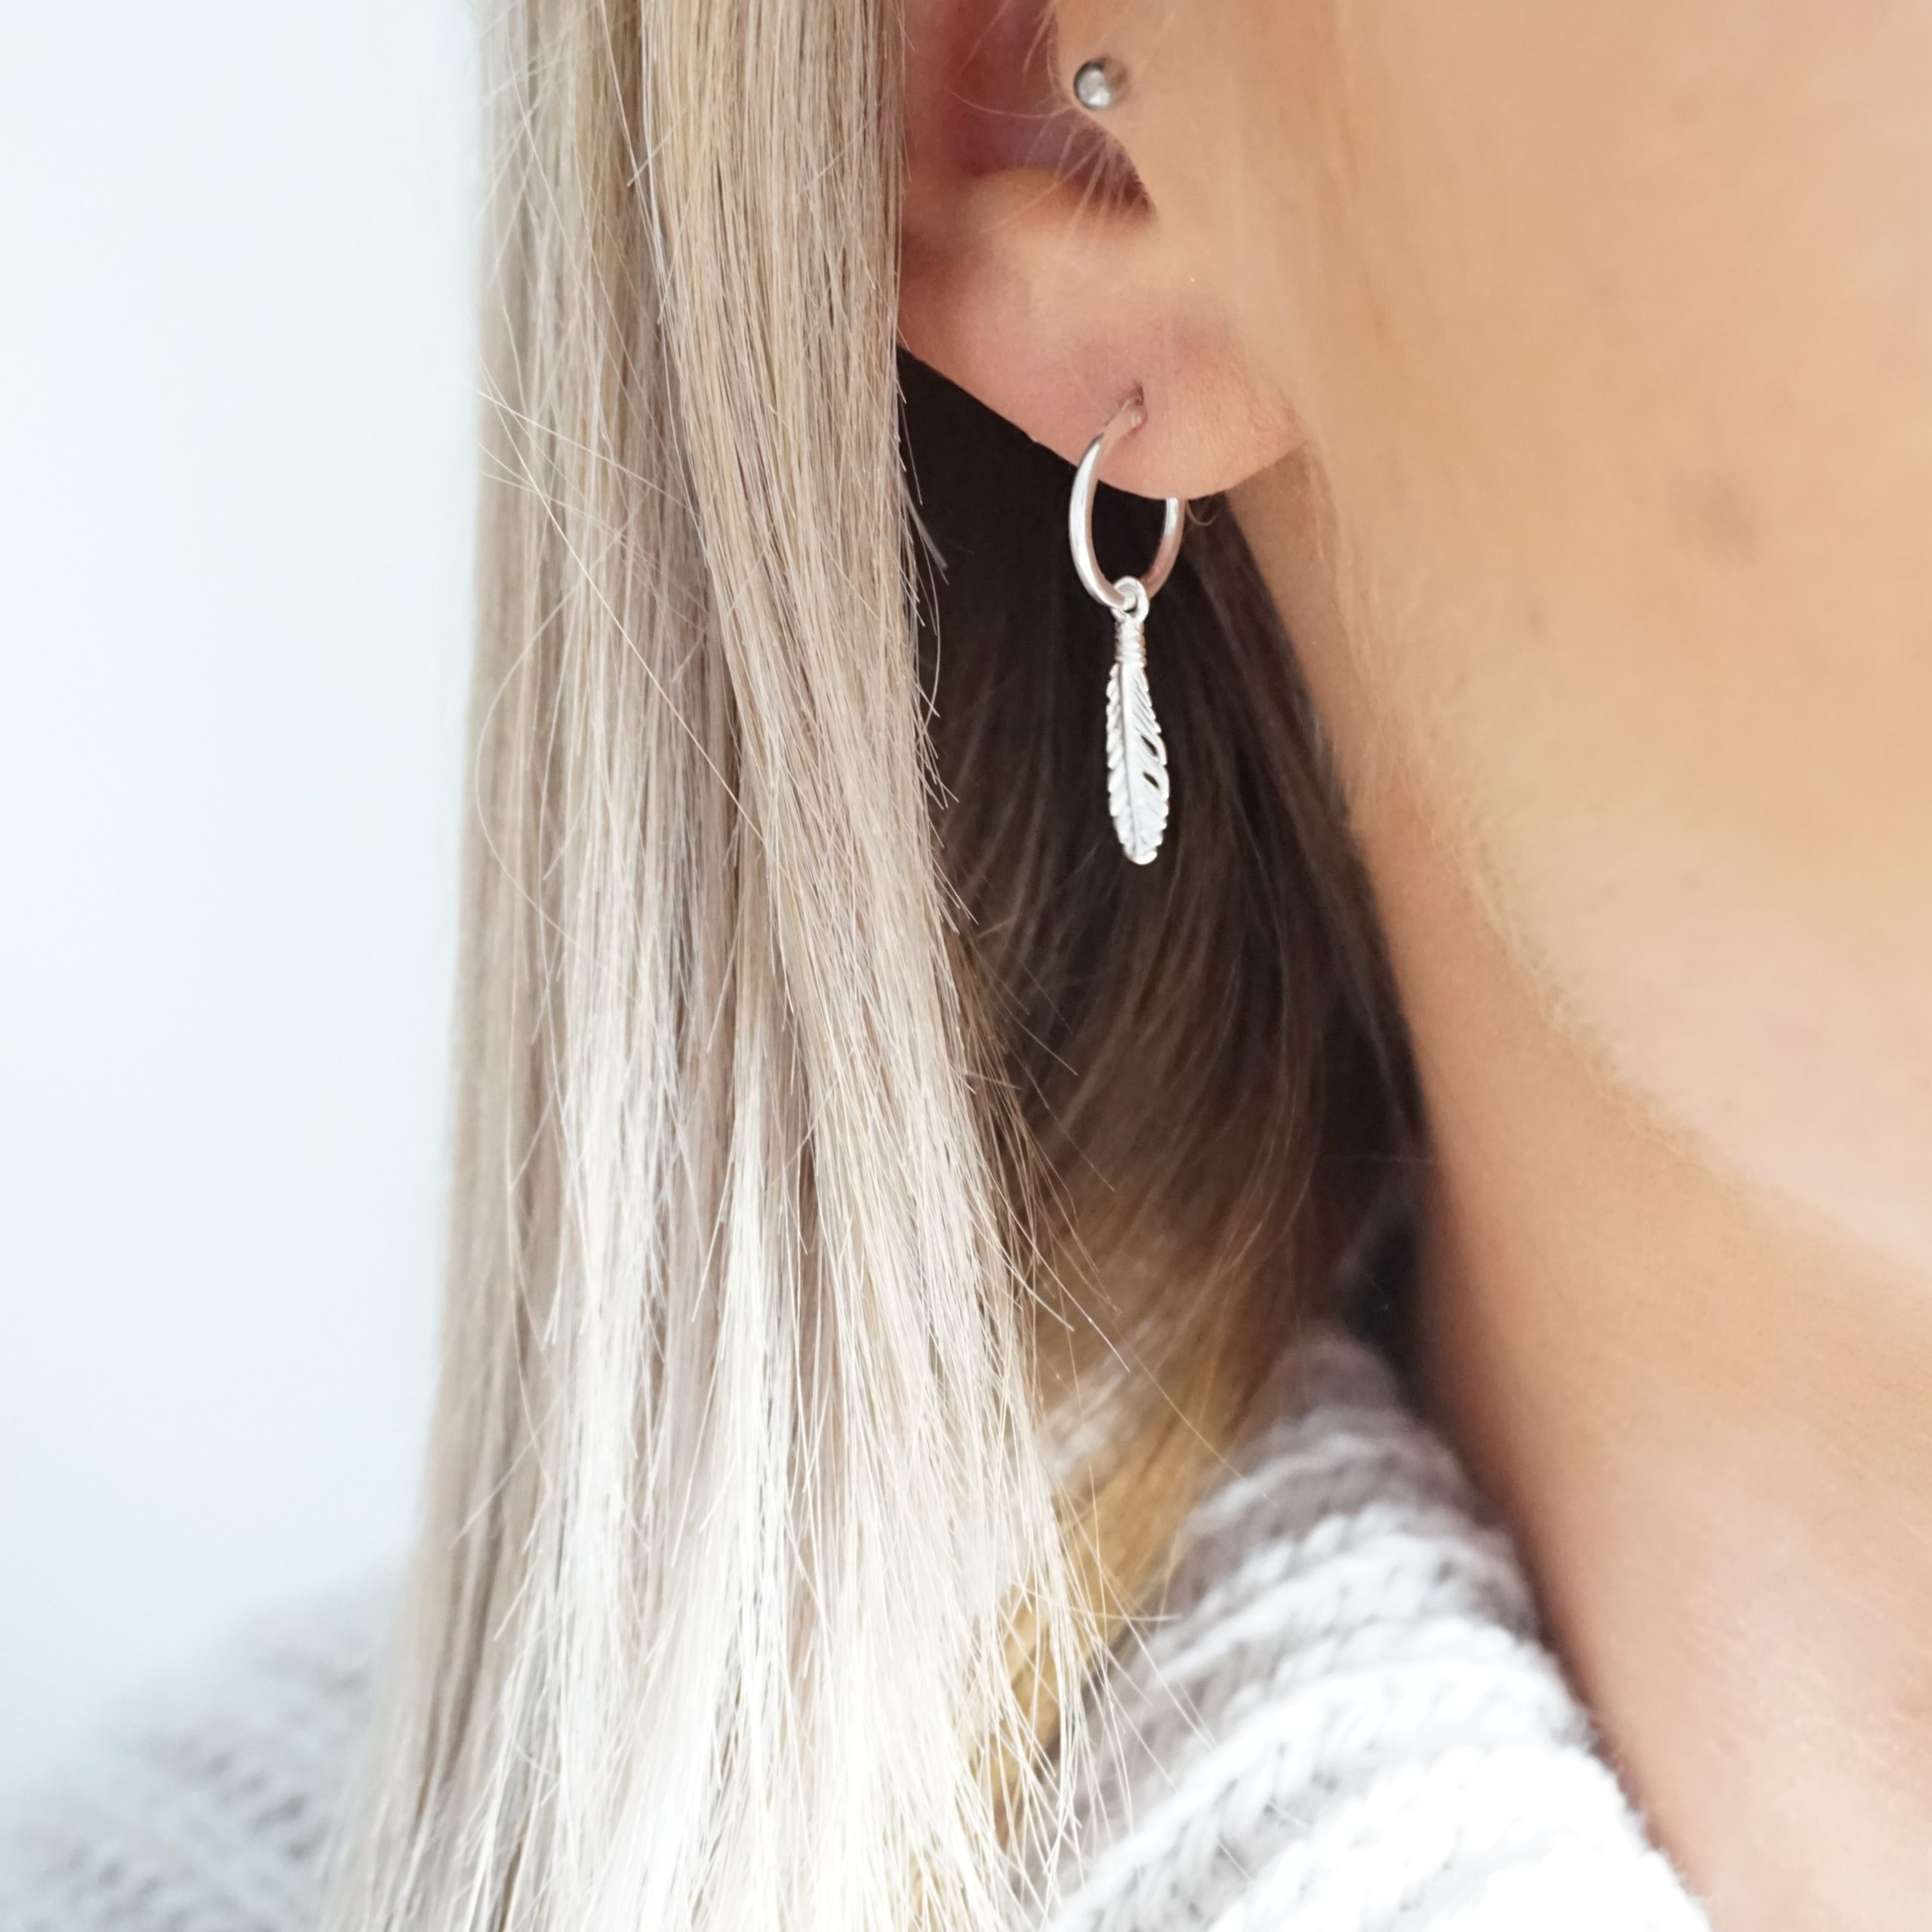 Sterling silver hoop earrings with feather charms